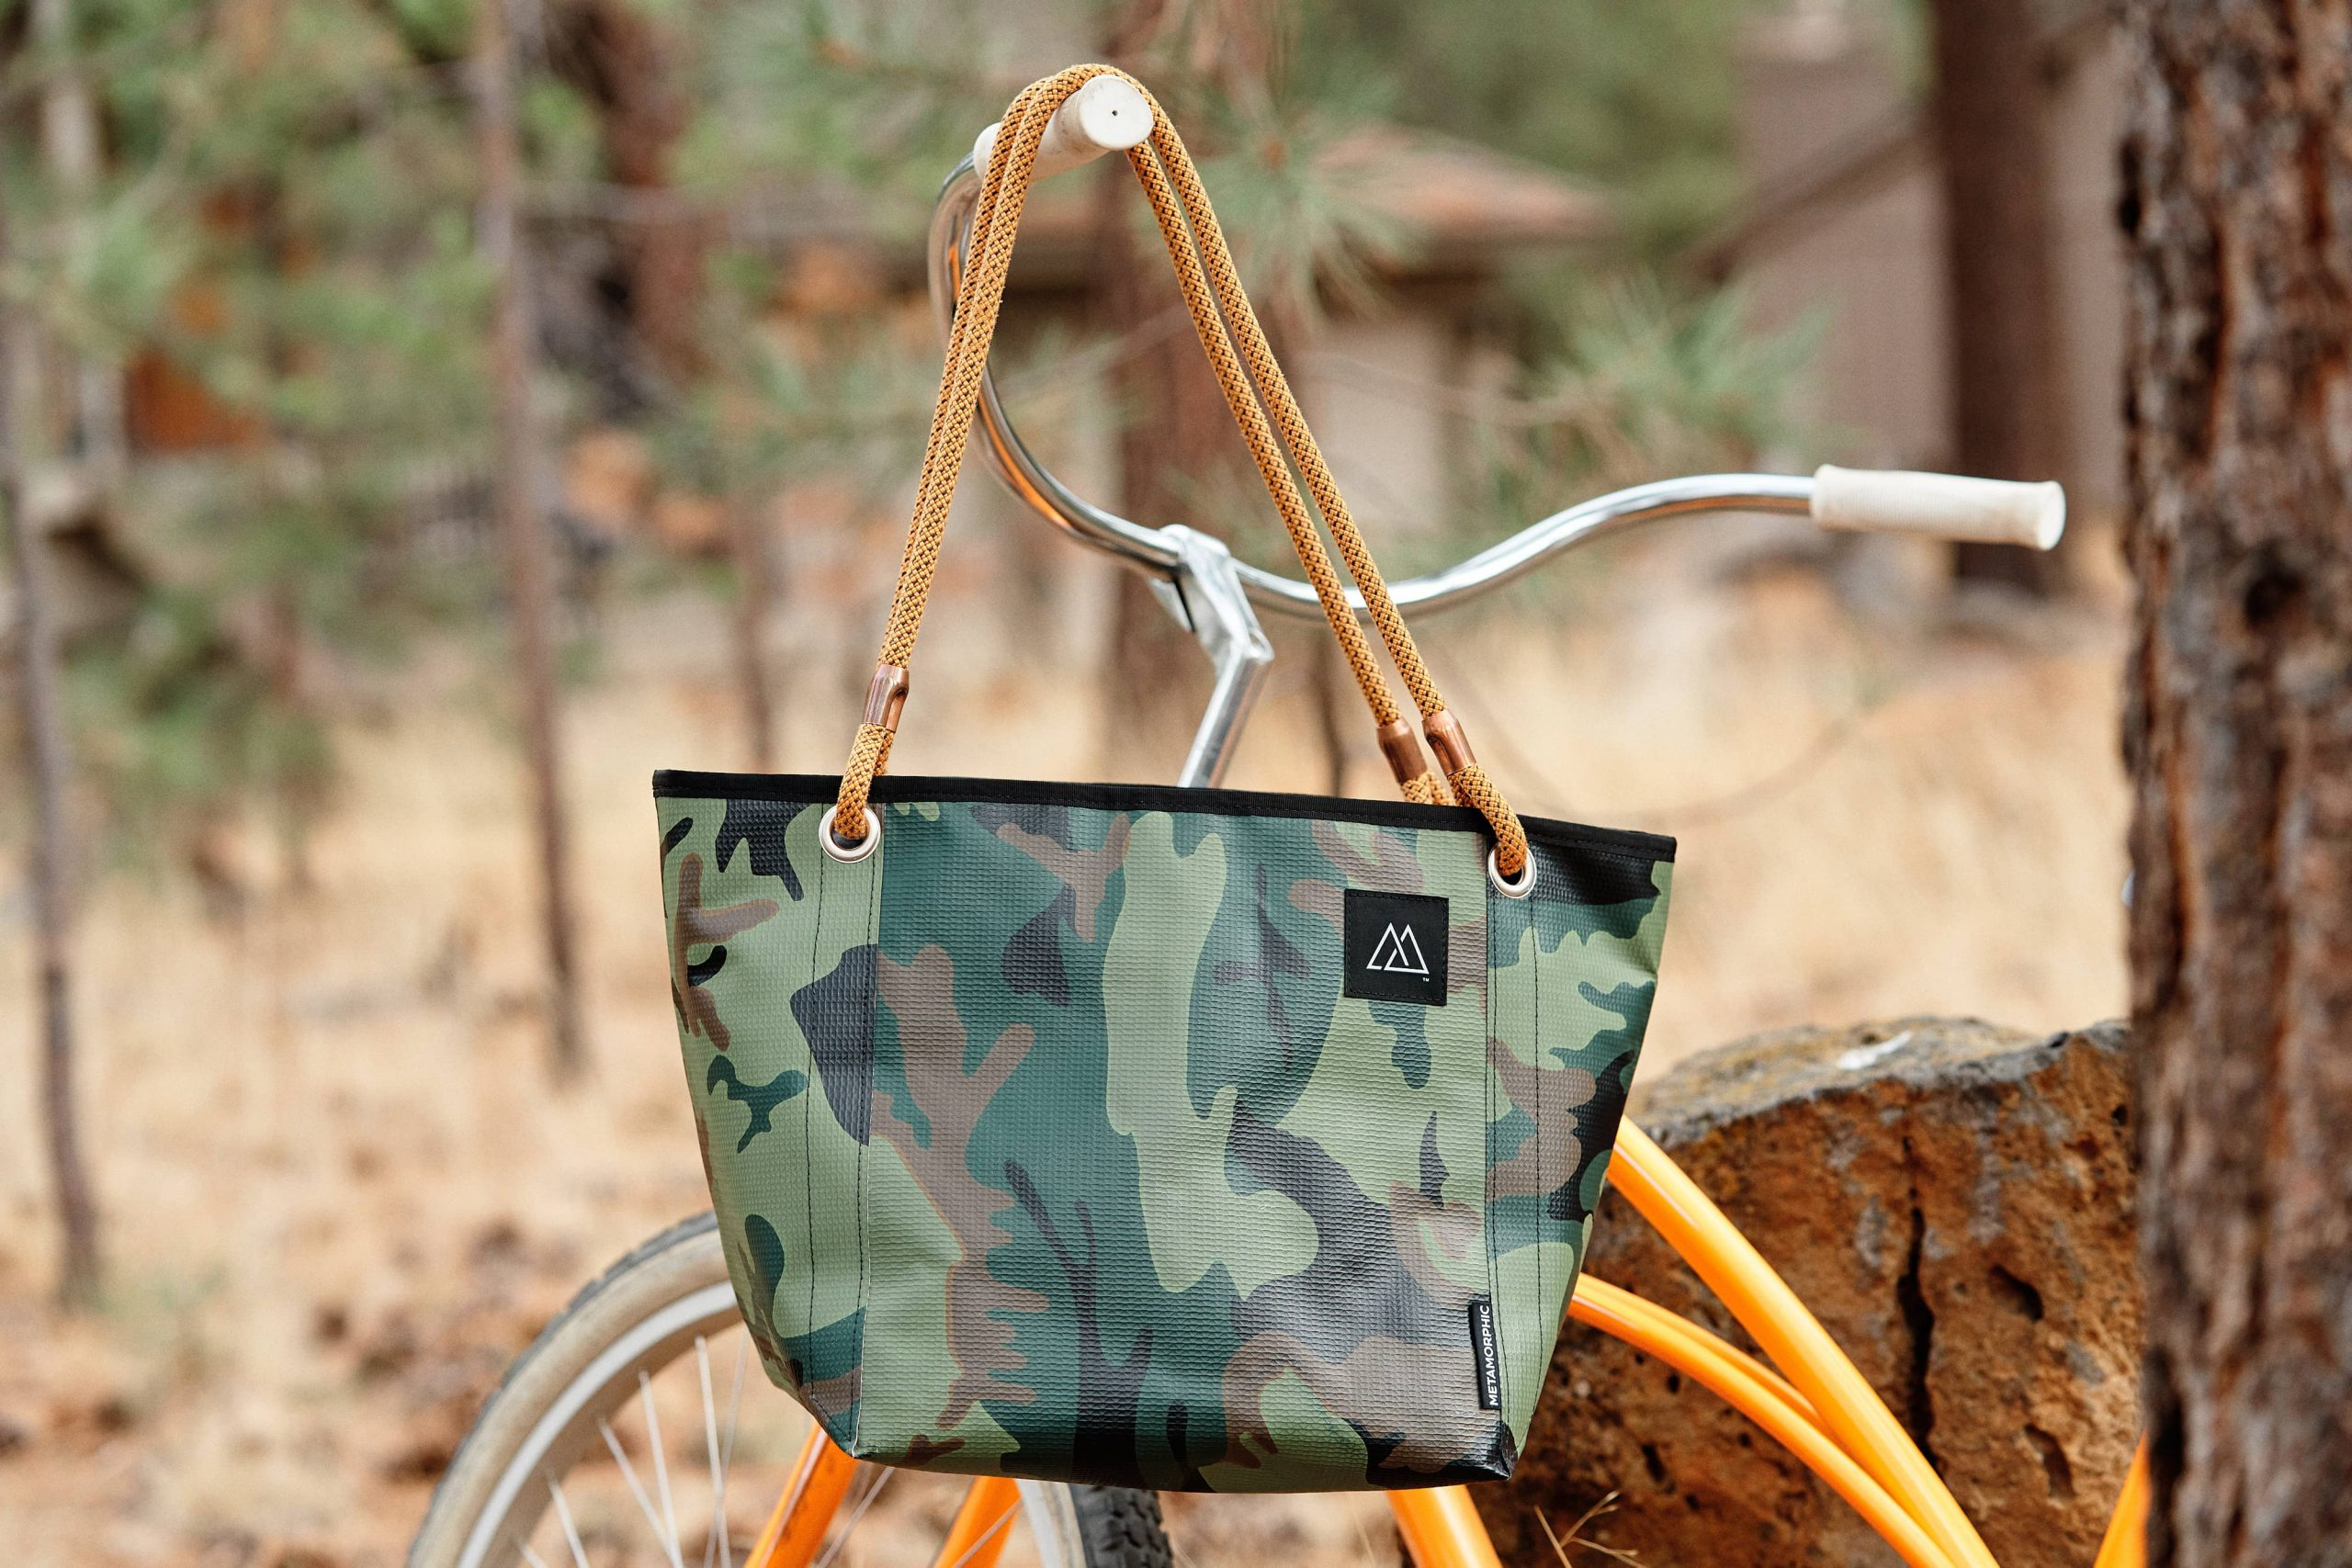 Metamorphic Gear's Deluxe Tote hanging on the handlebars of an orange bike